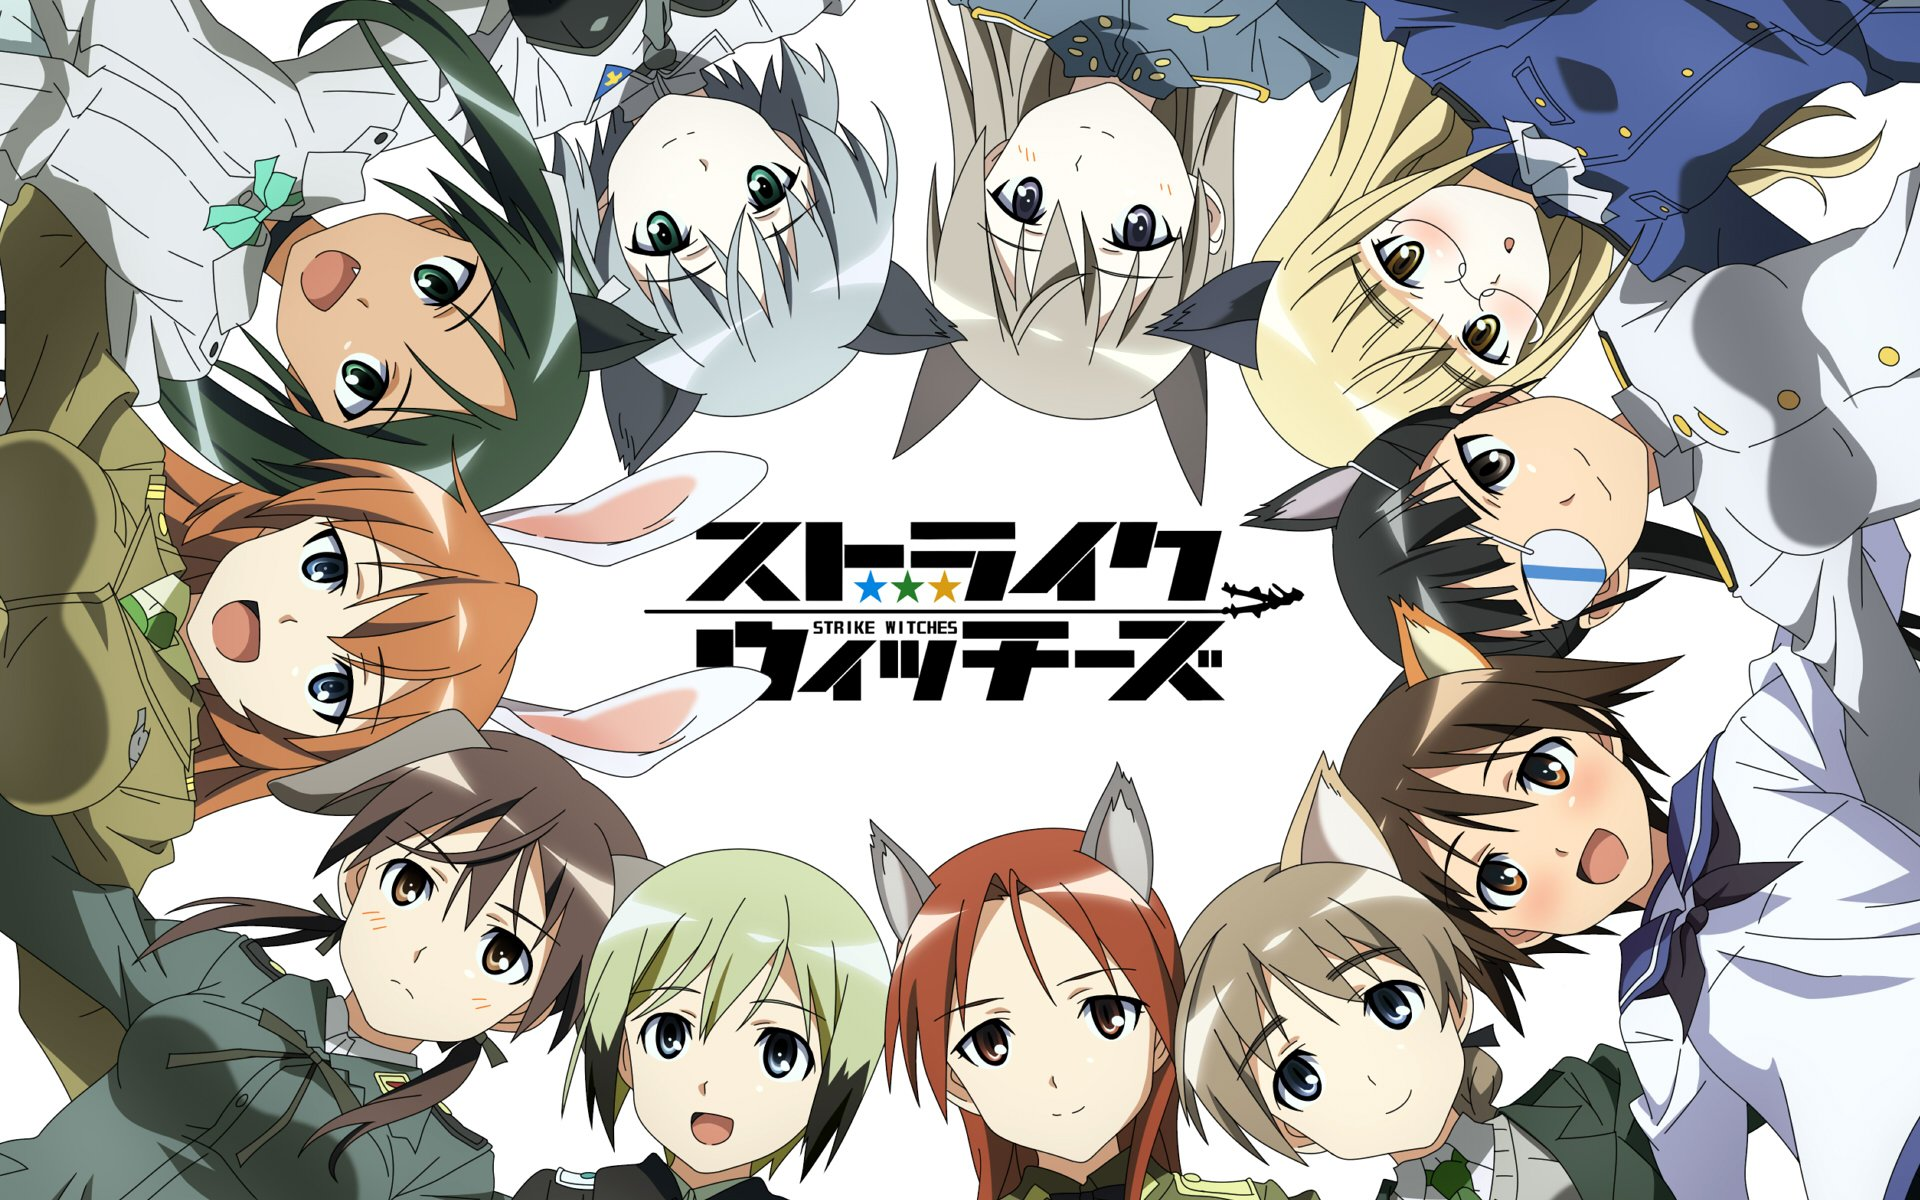 Strike Witches: 501 Butai Hasshin Shimasu! Sub Indo Episode 01-12 End